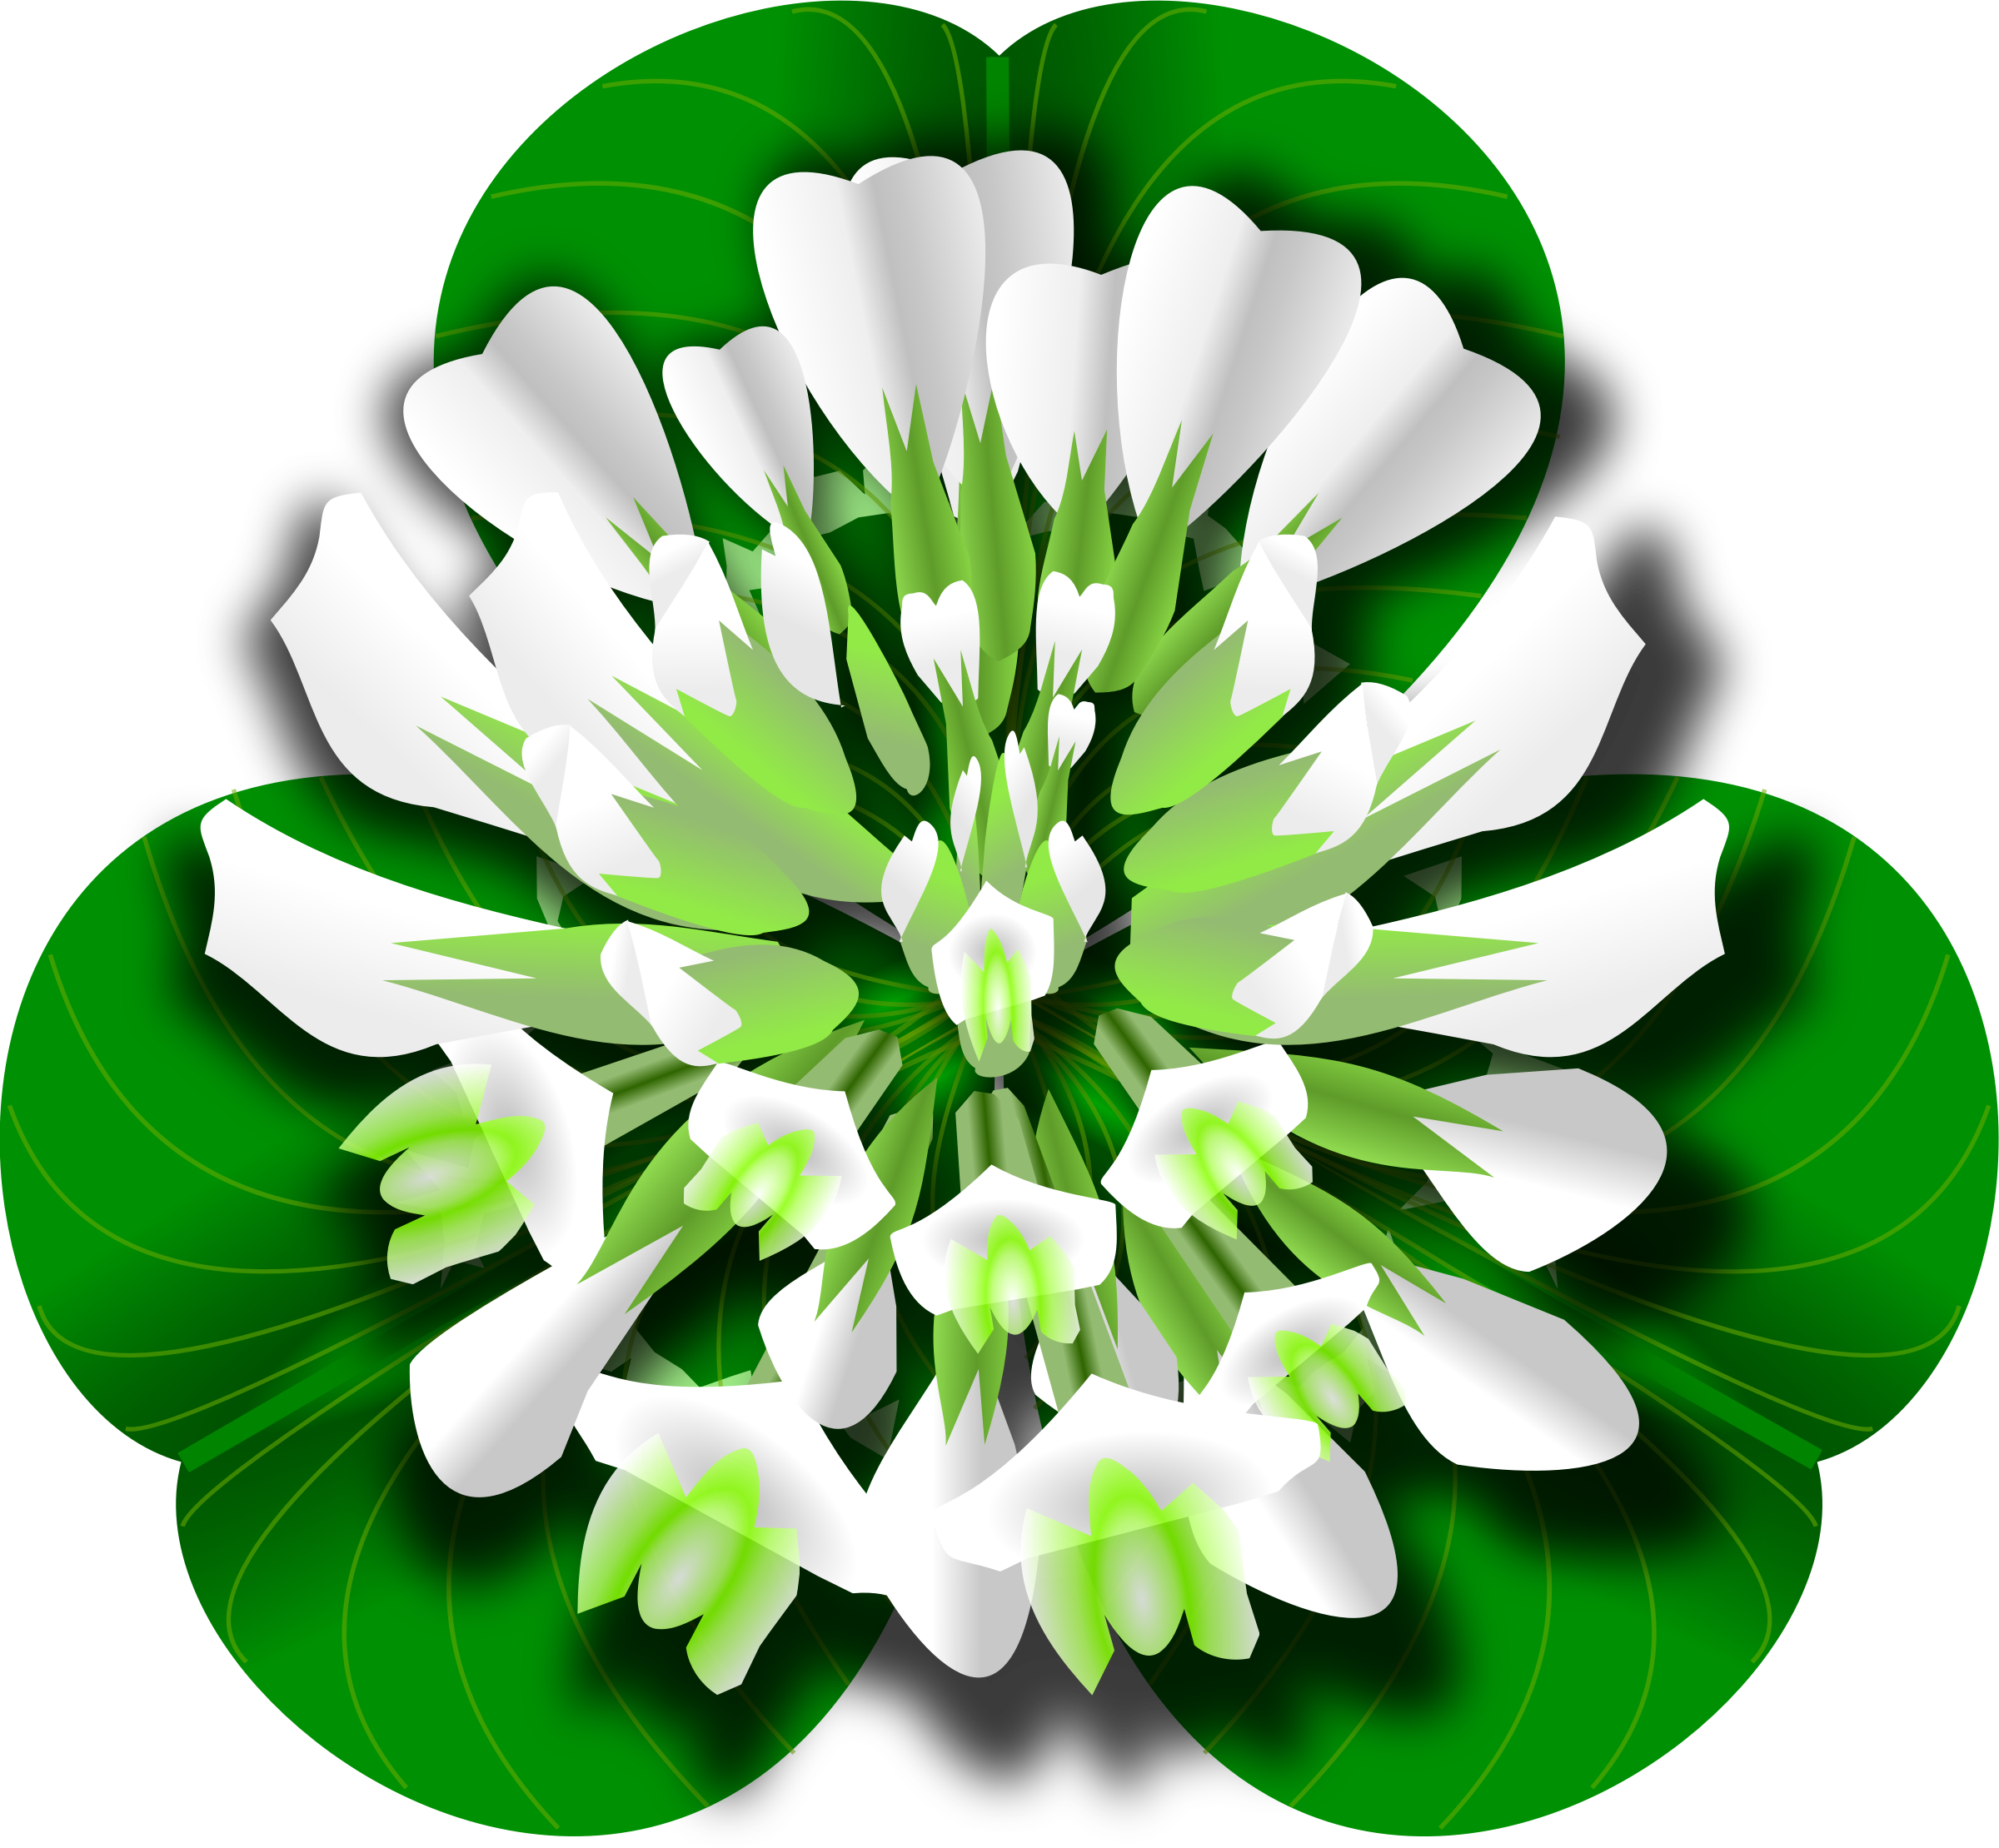 White flower icons png. Clover clipart original